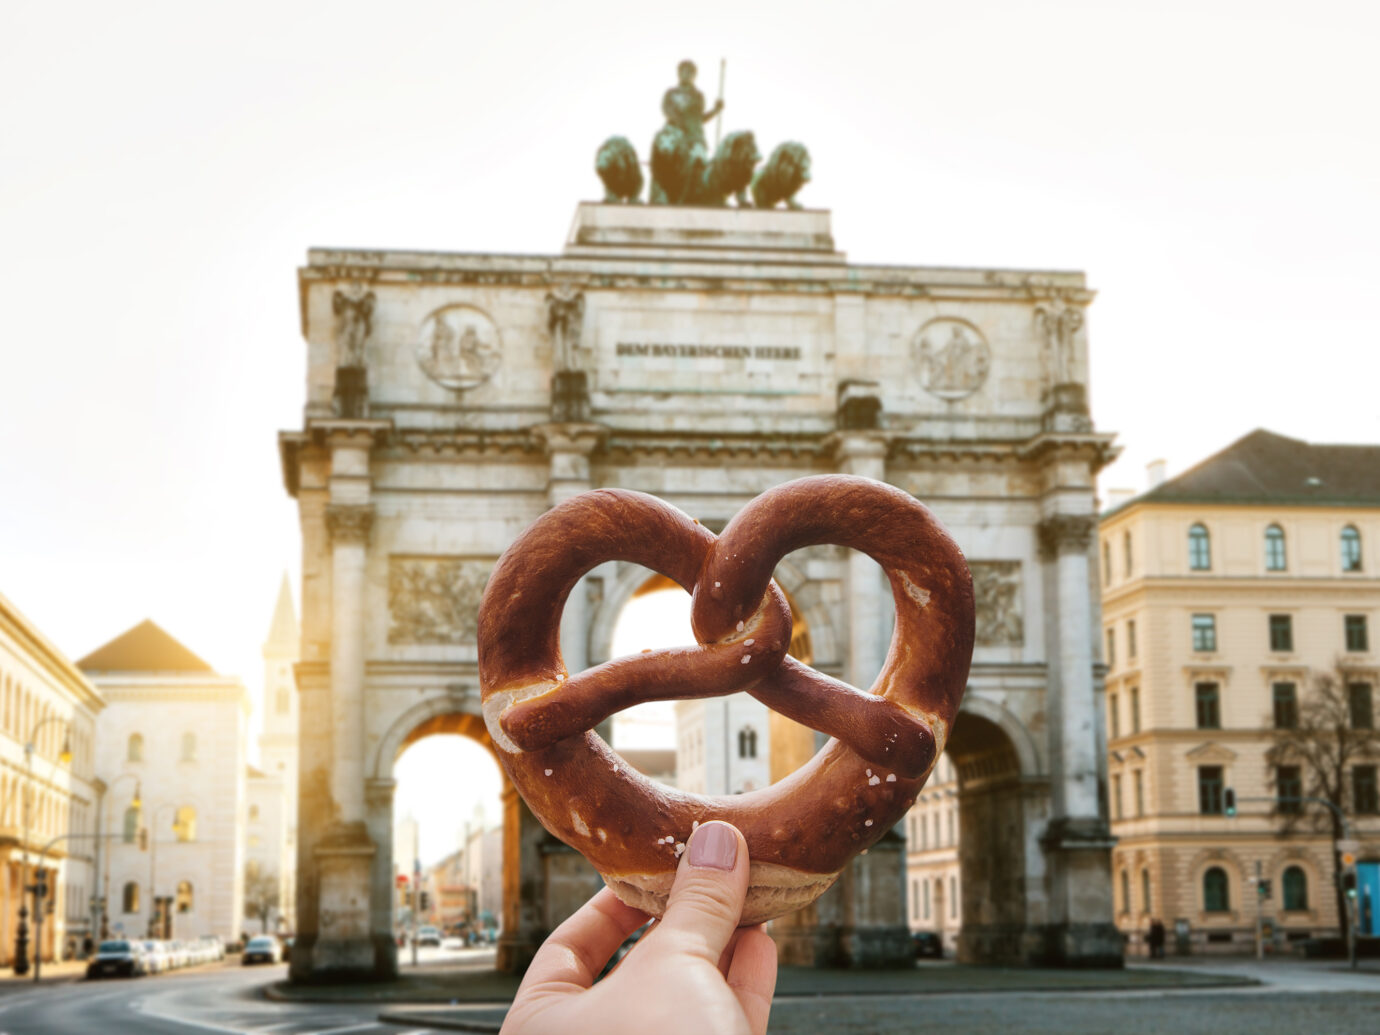 Person holding a pretzel in front of Victory Gate triumphal arch Siegestor in Munich. Germany